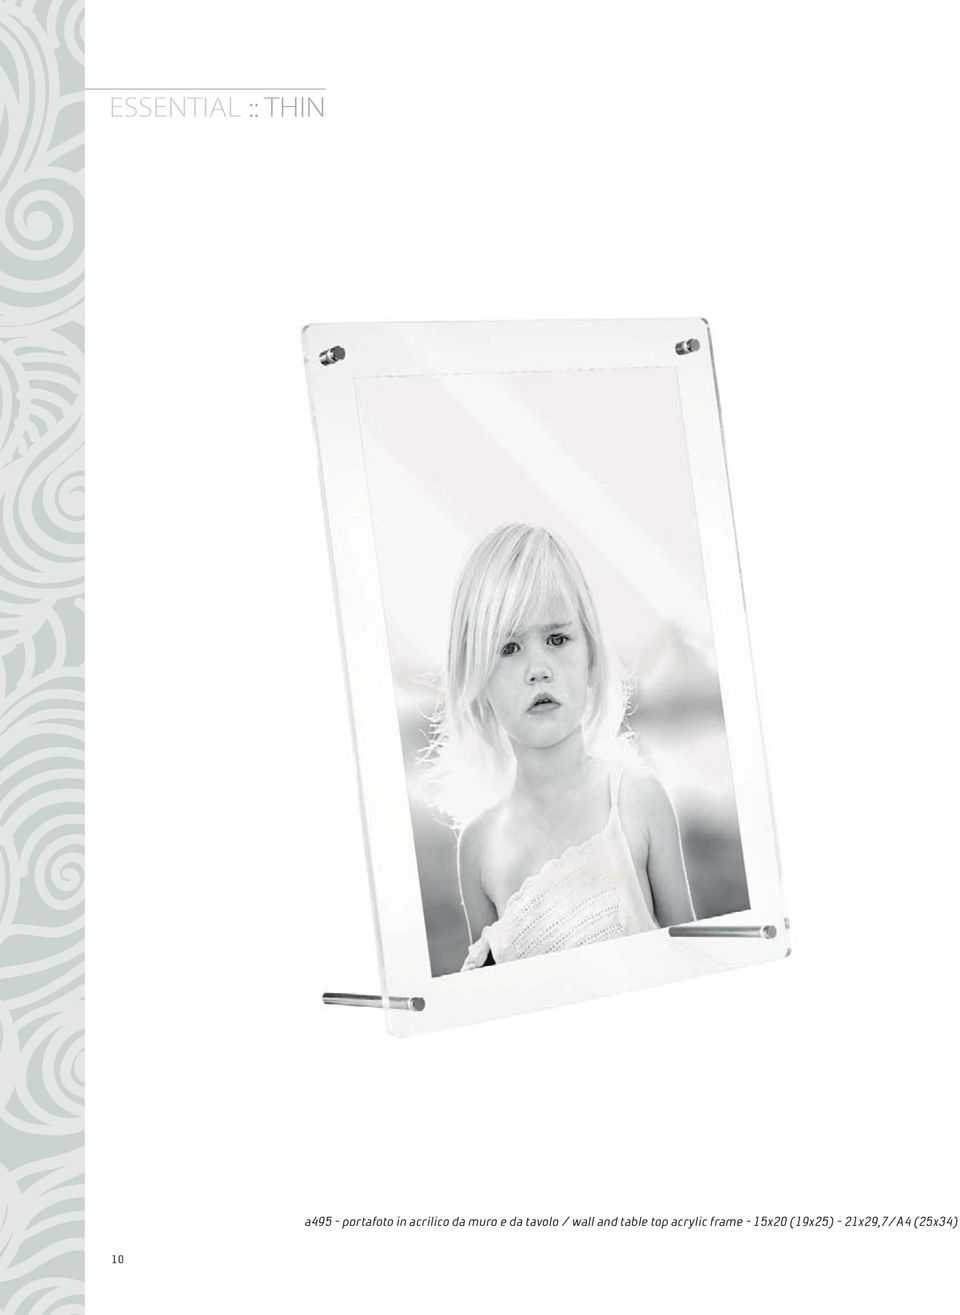 wall and table top acrylic frame -